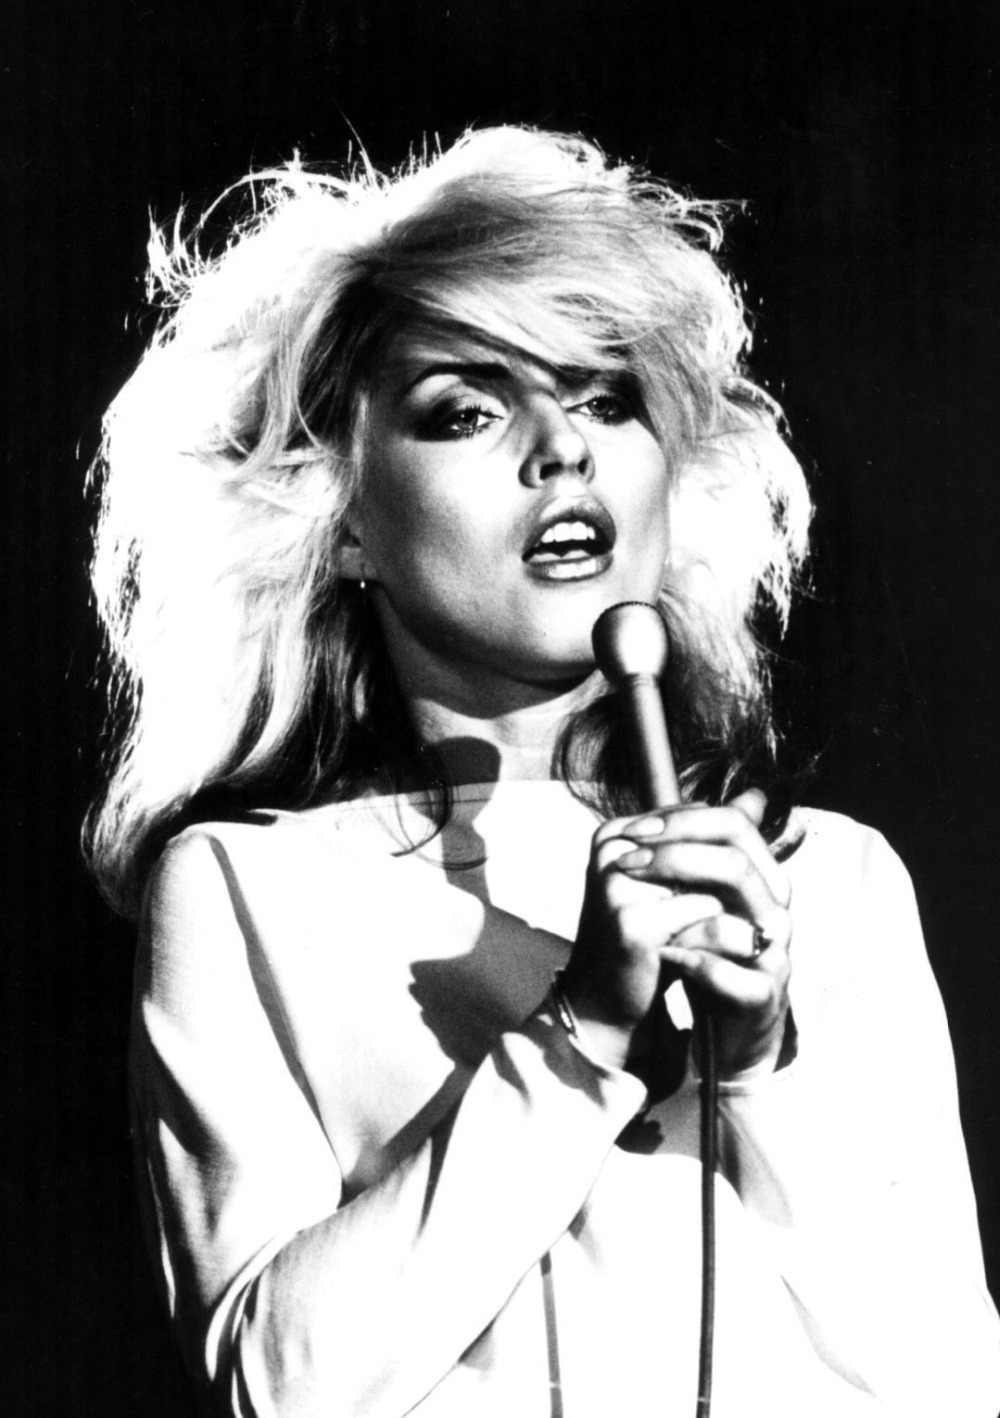 BLONDIE DEBBIE HARRY Silk Poster Wall Decor Room Painting 24X36Inch